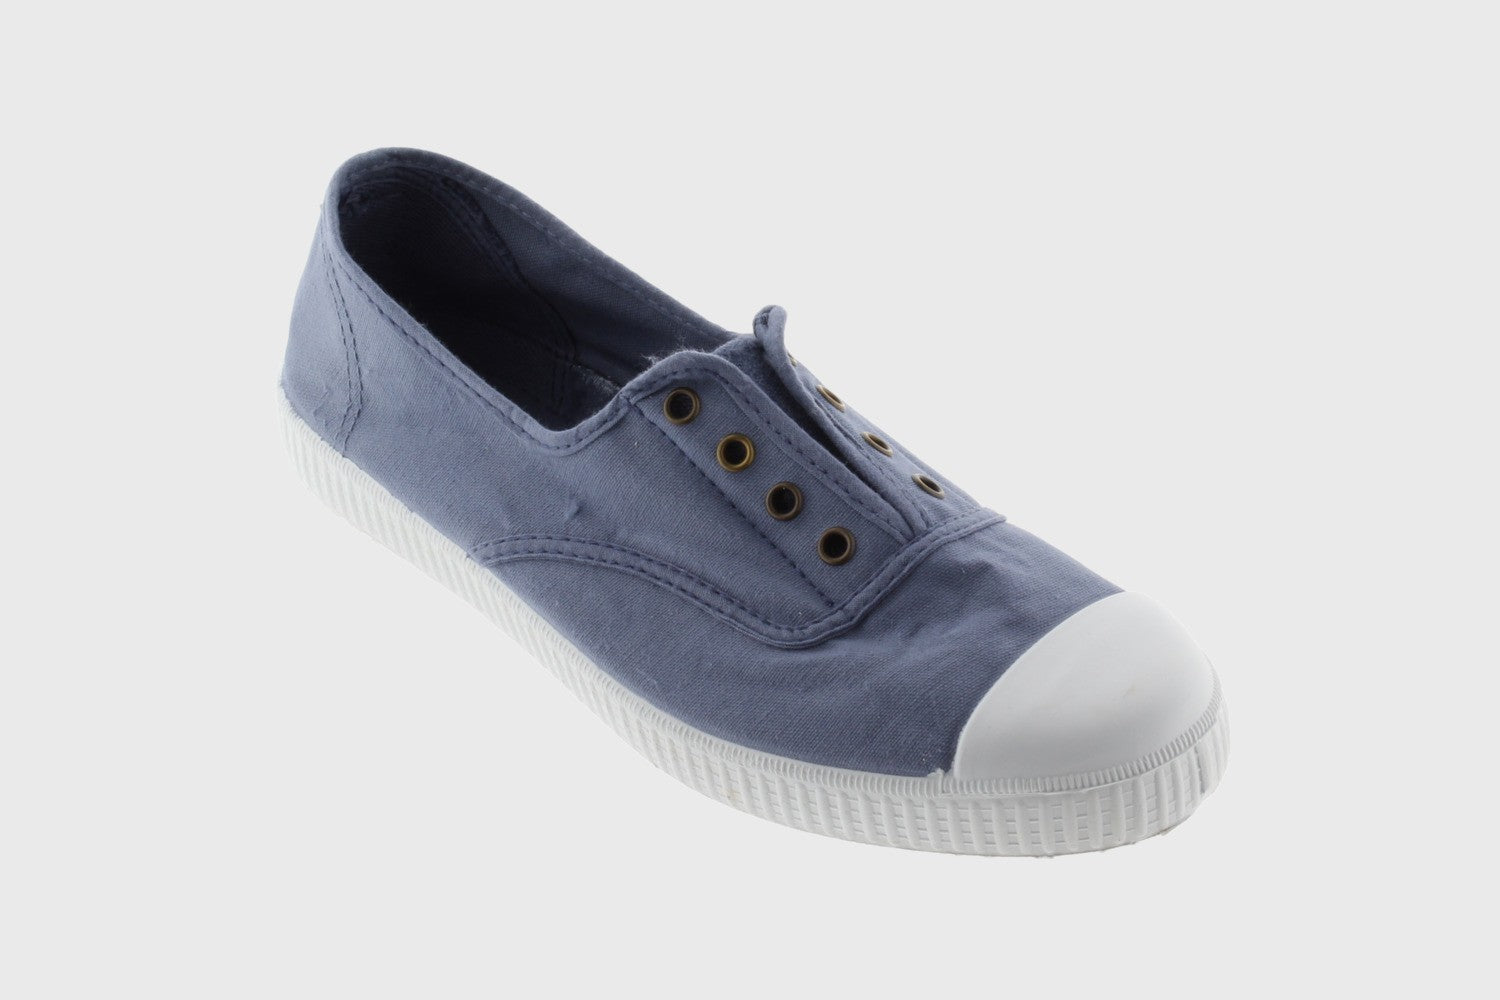 Victoria Canvas No Laces Trainers for Ladies in Jean Blue